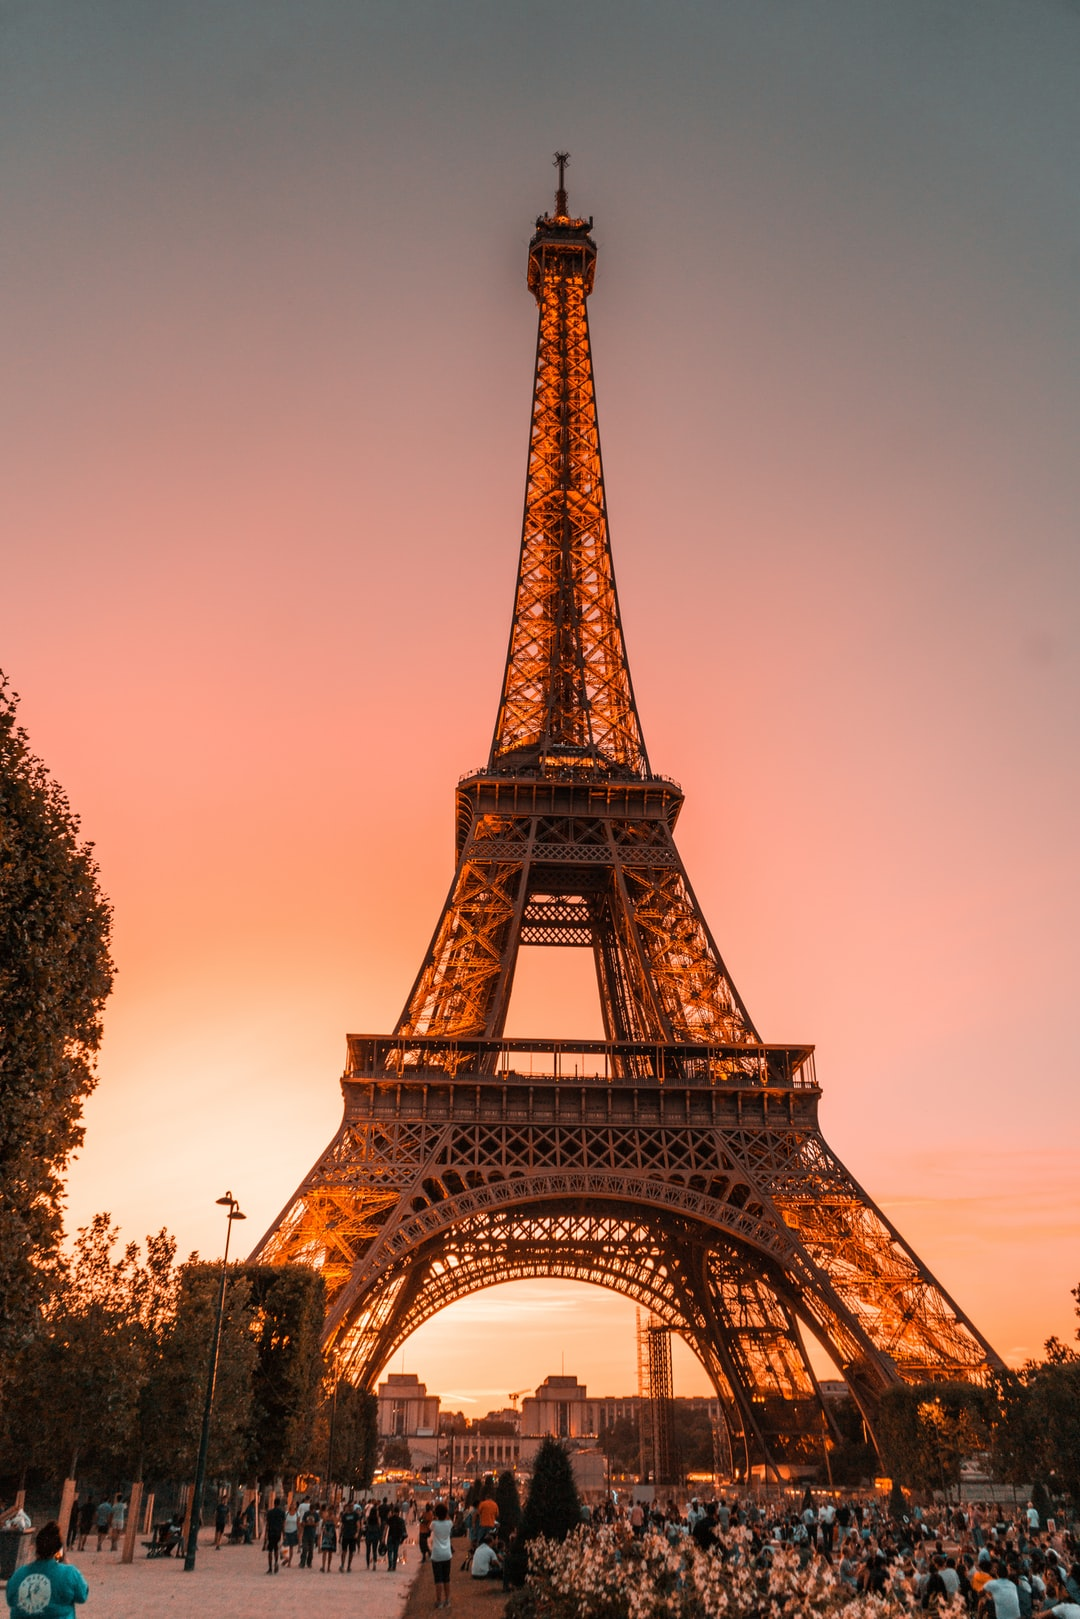 architecture, Cities, France, Light, Towers, Monuments